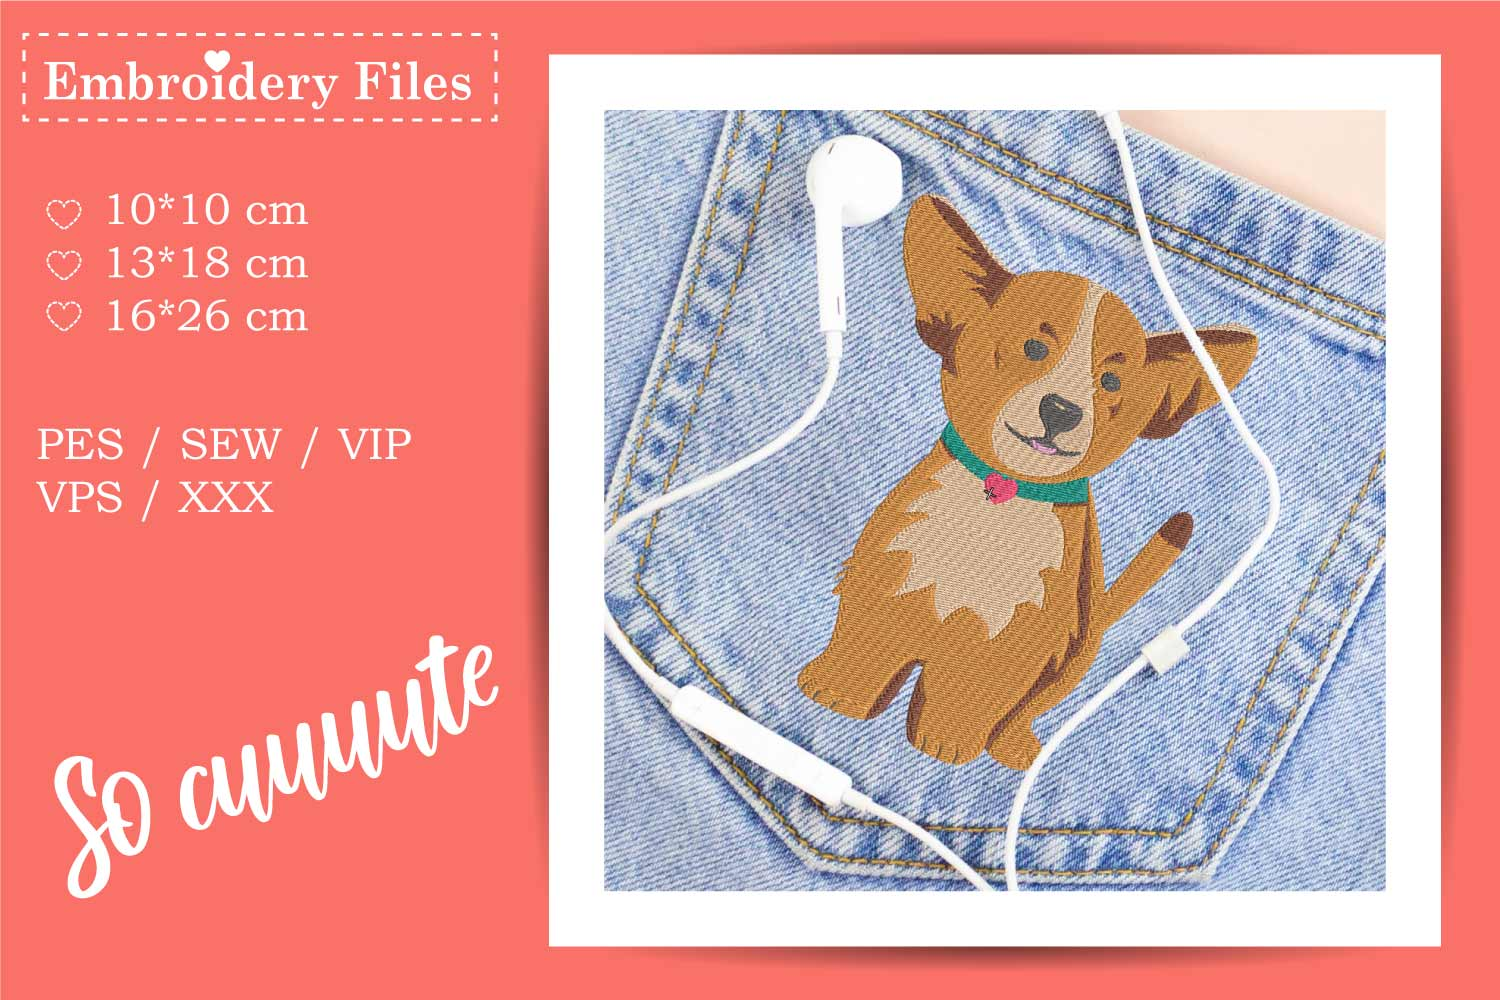 Cute little Dog - Embroidery File for Beginners example image 2